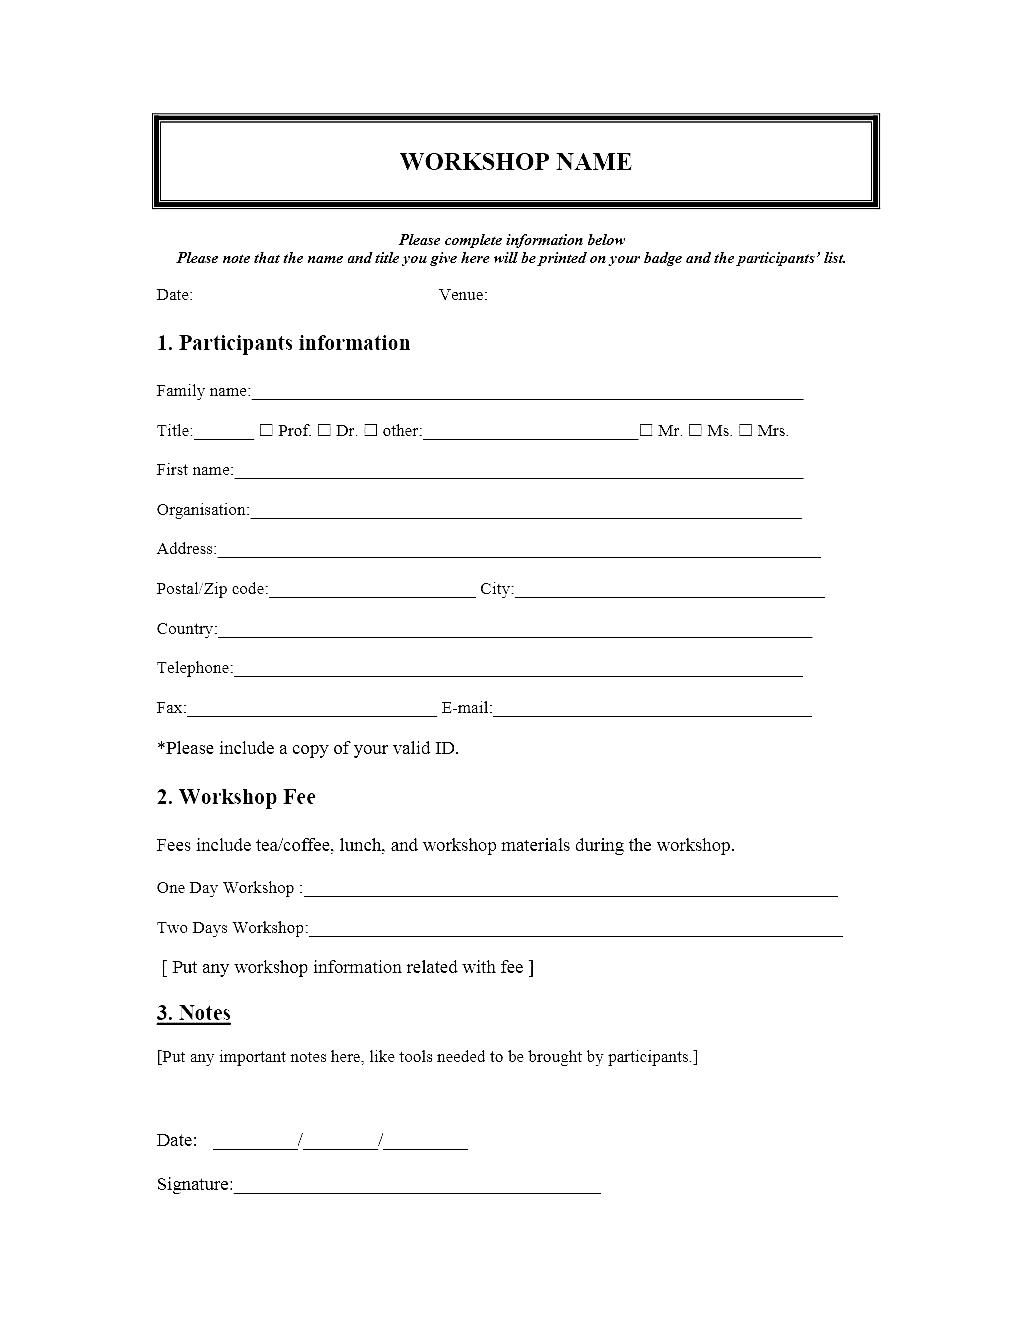 Wonderful Event Registration Form Template Microsoft Word | Besttemplate123 Regard To Event Registration Form Template Word